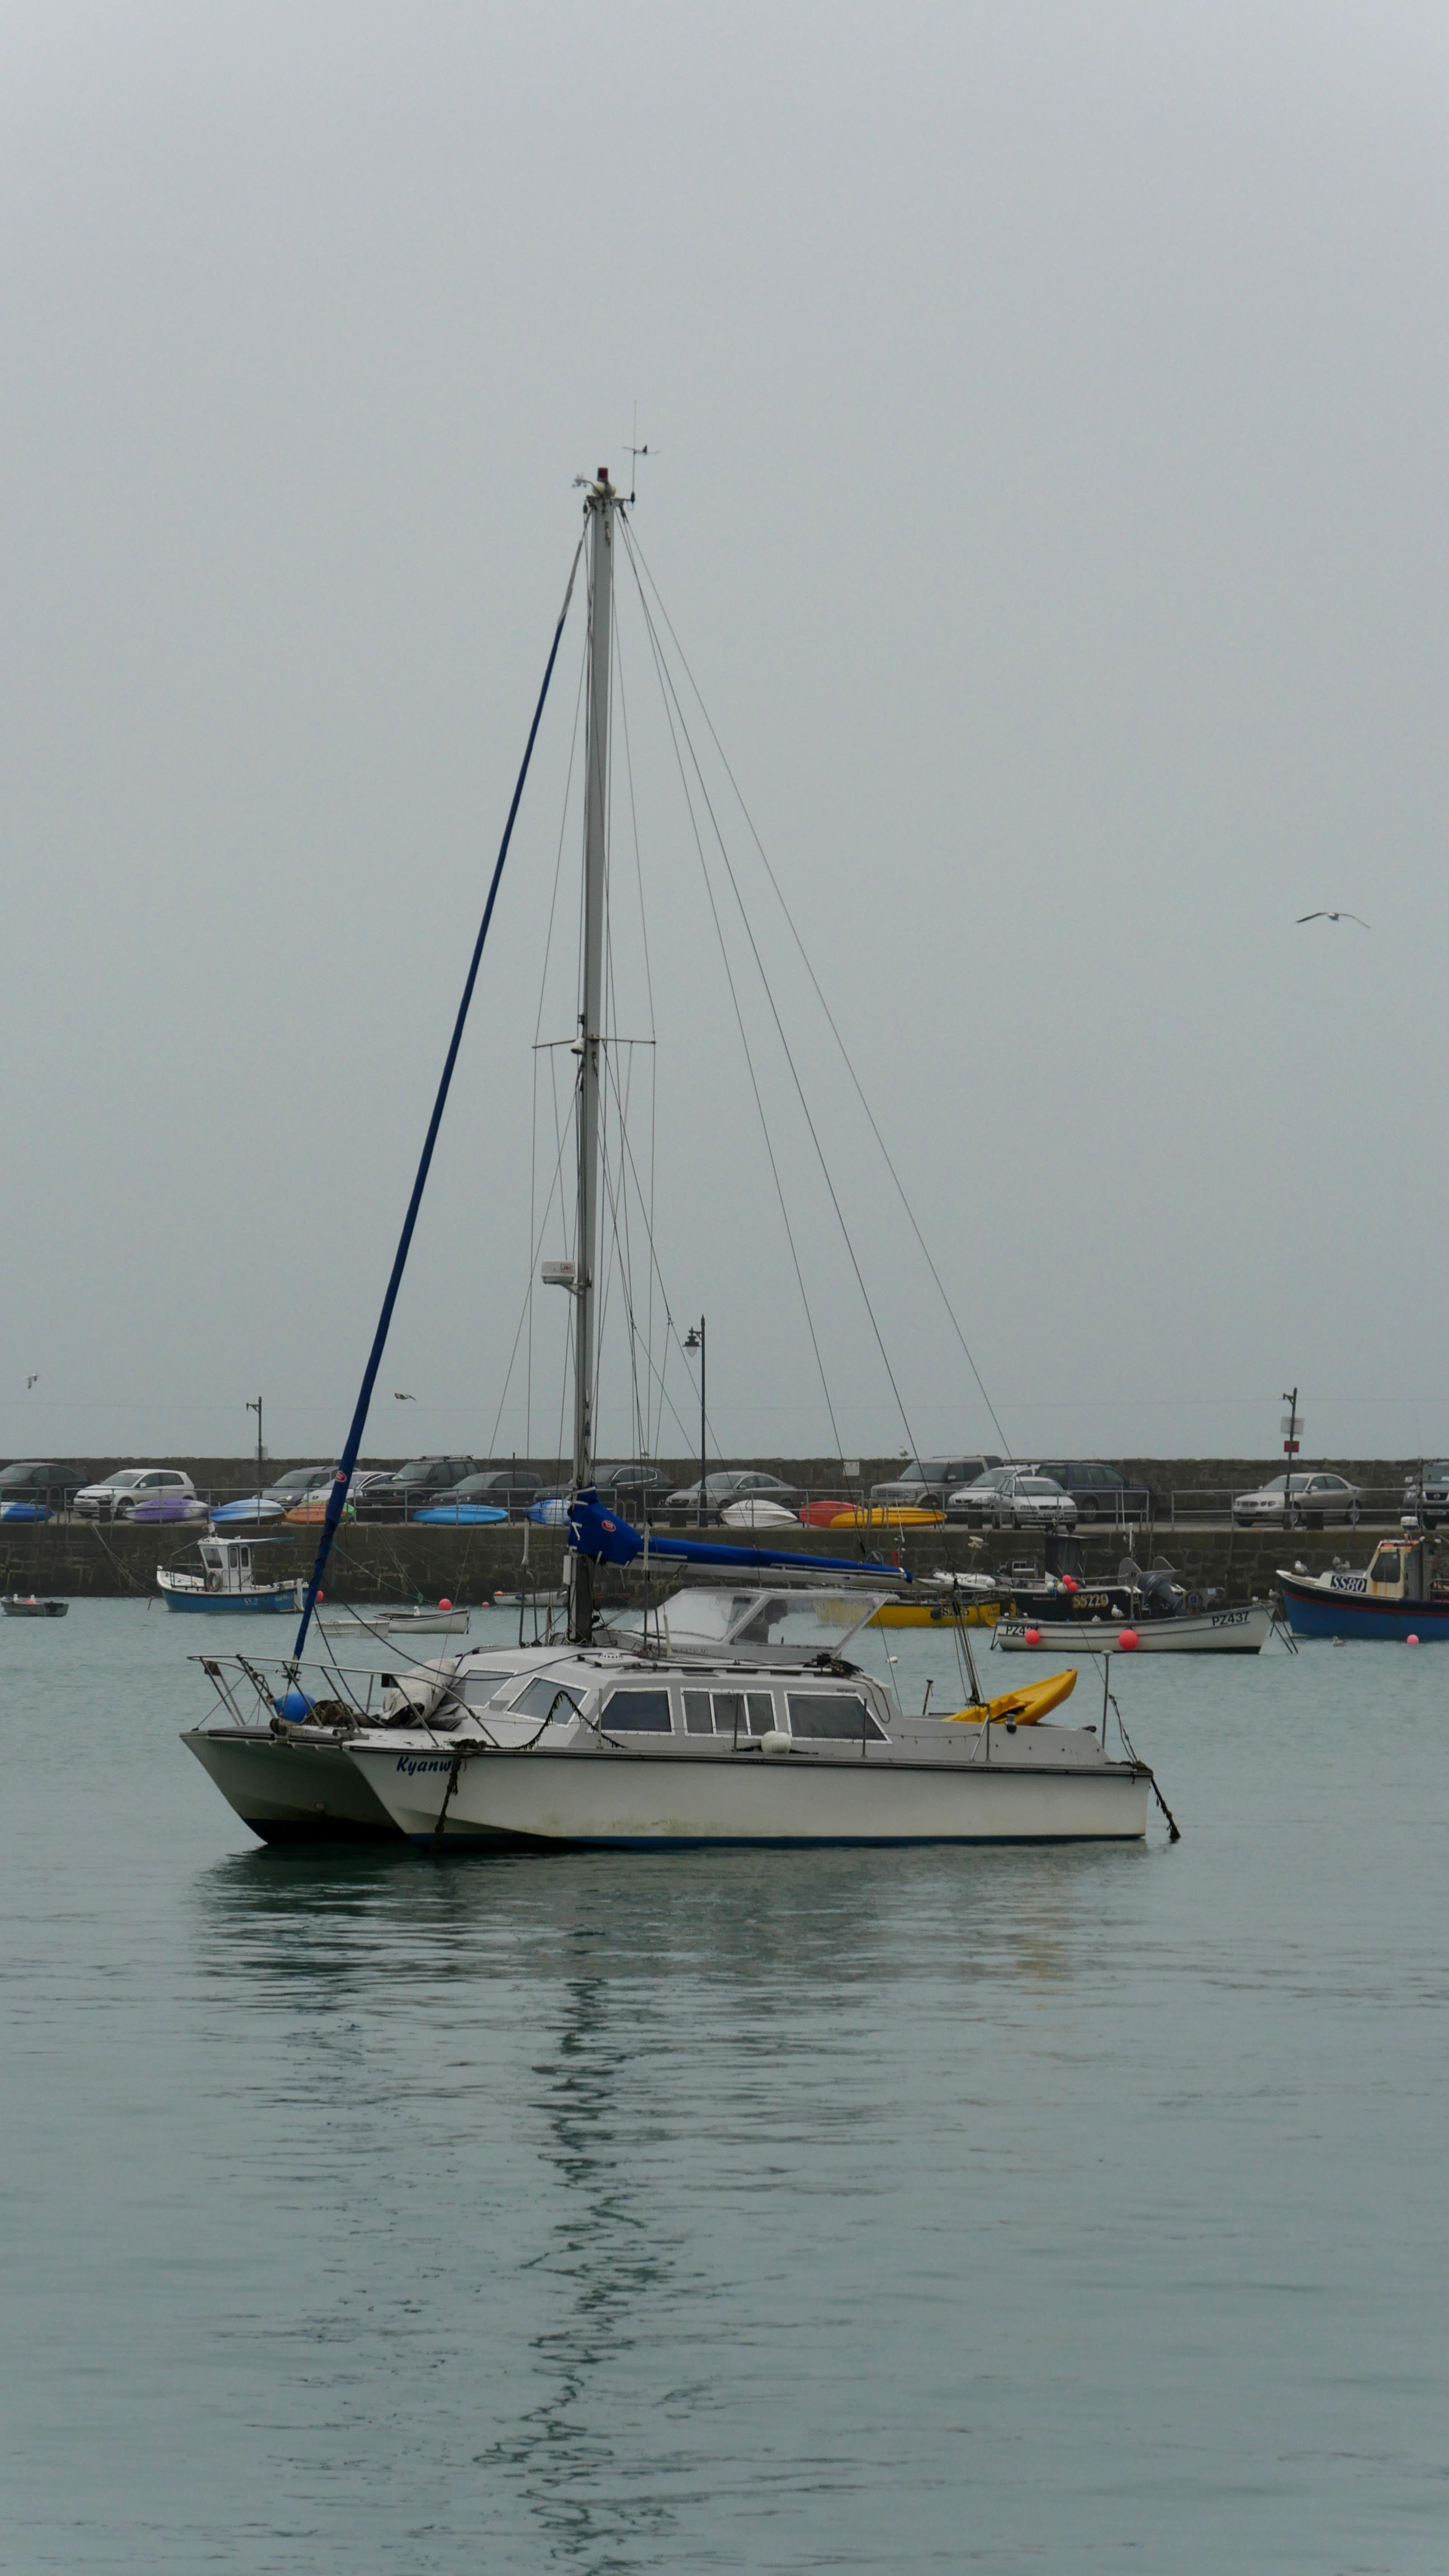 Casualty vessel in St Ives harbour